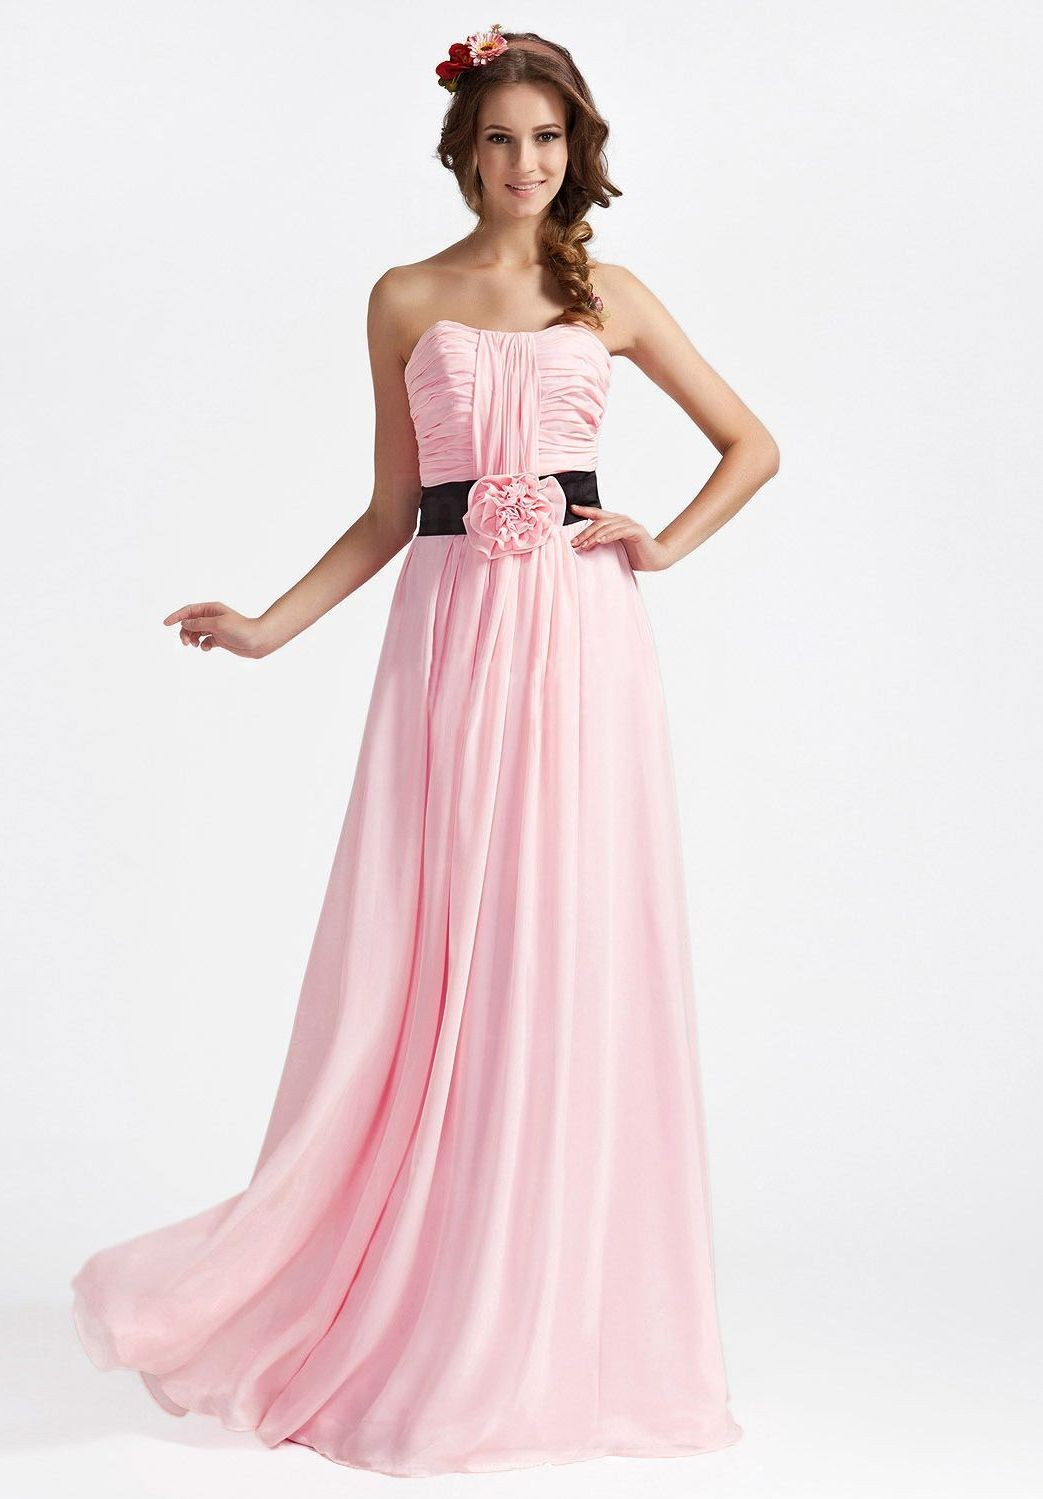 Whiteazalea bridesmaid dresses romantic pink bridesmaid for Long strapless wedding dresses